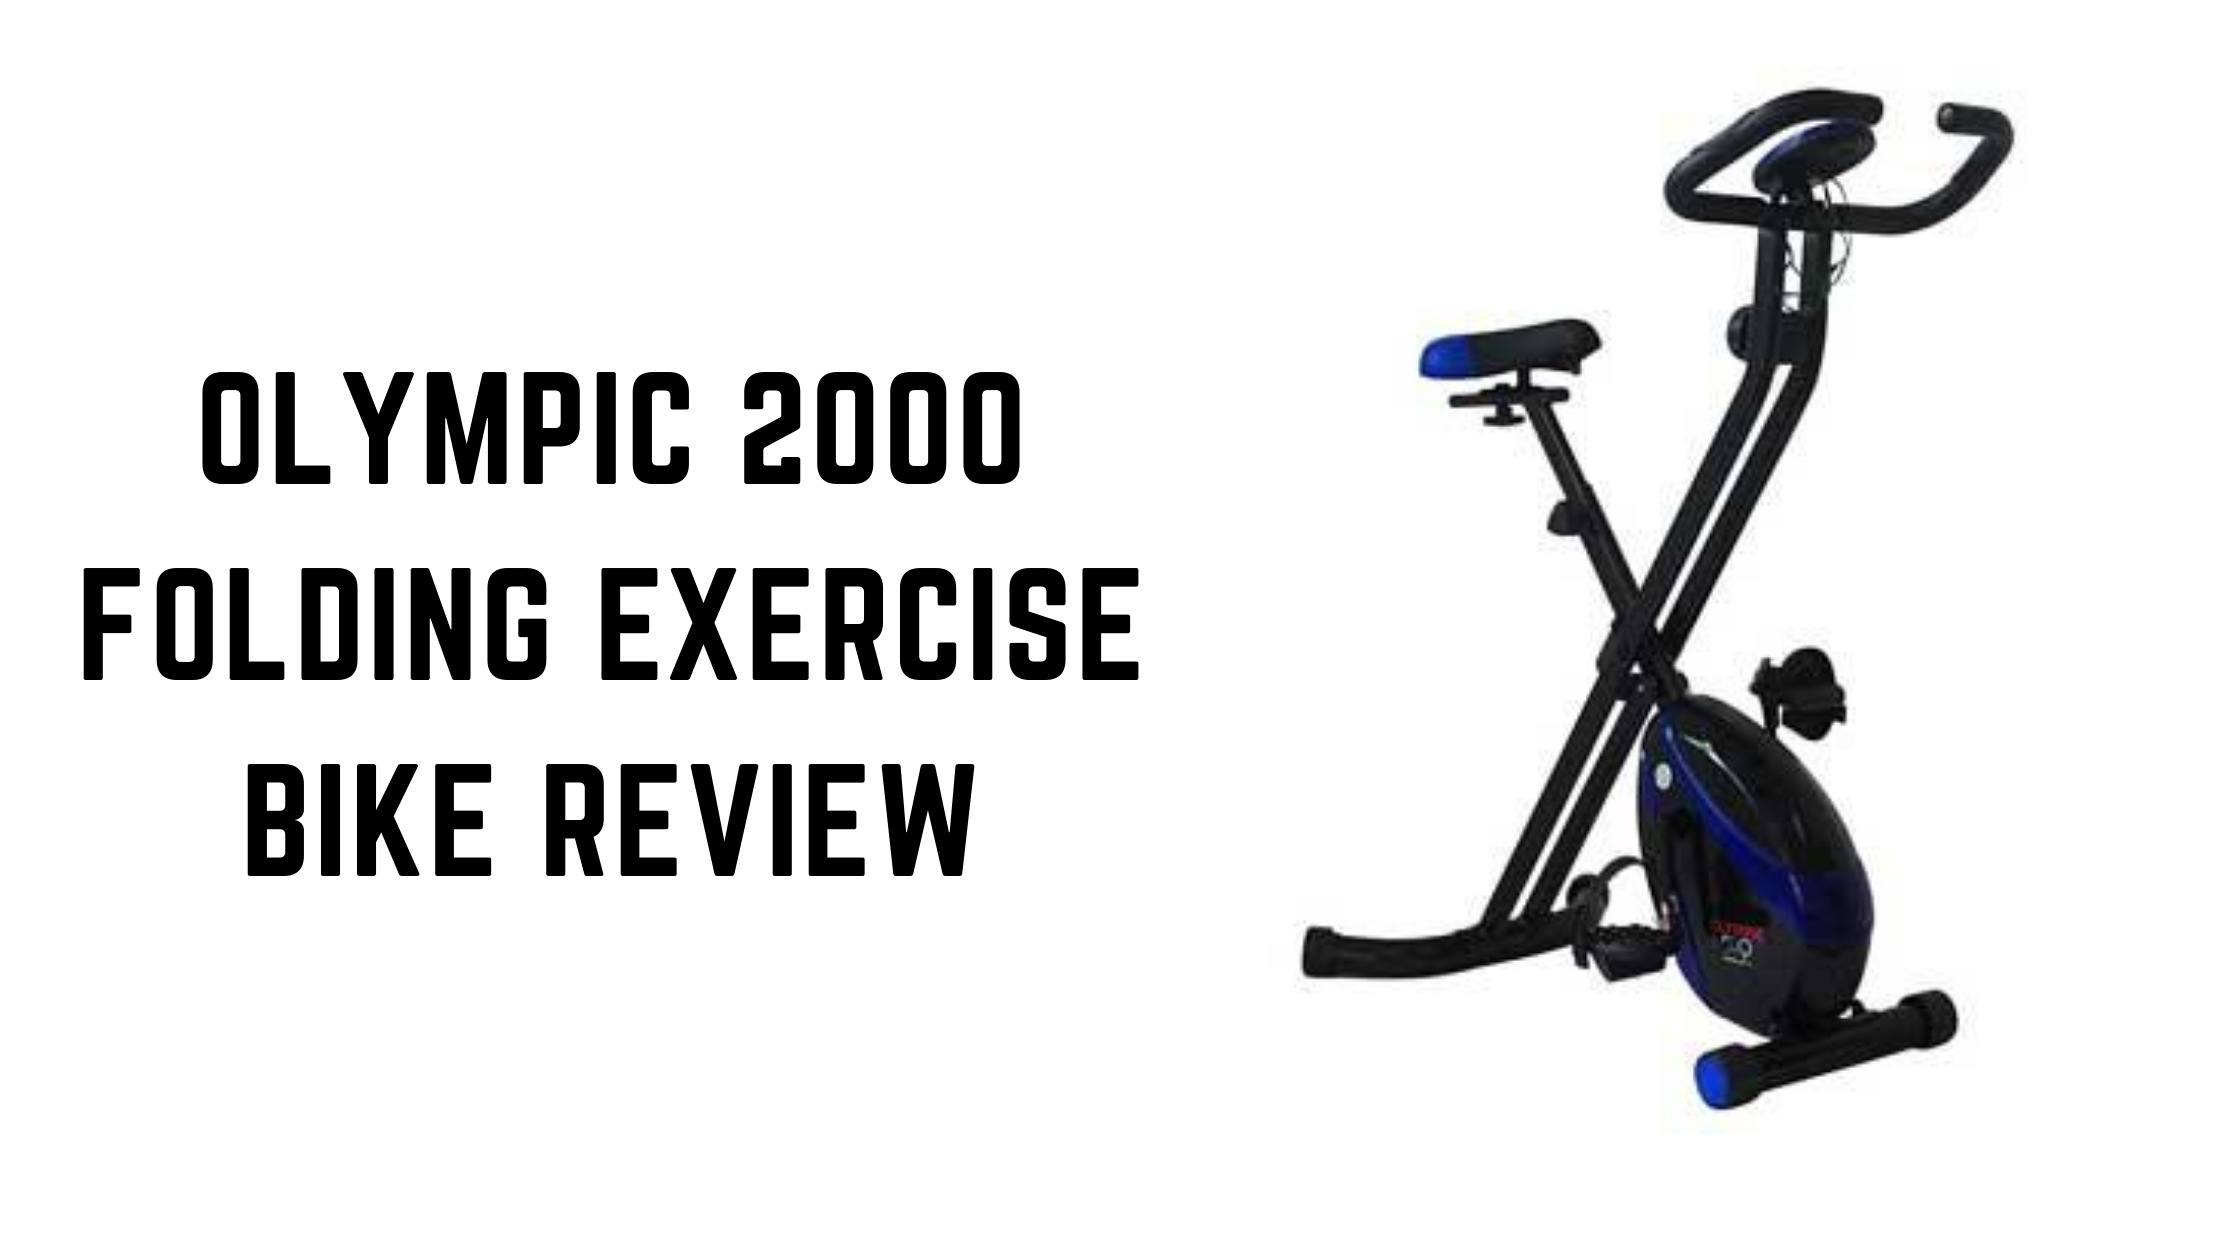 Olympic 2000 Folding Exercise Bike Review